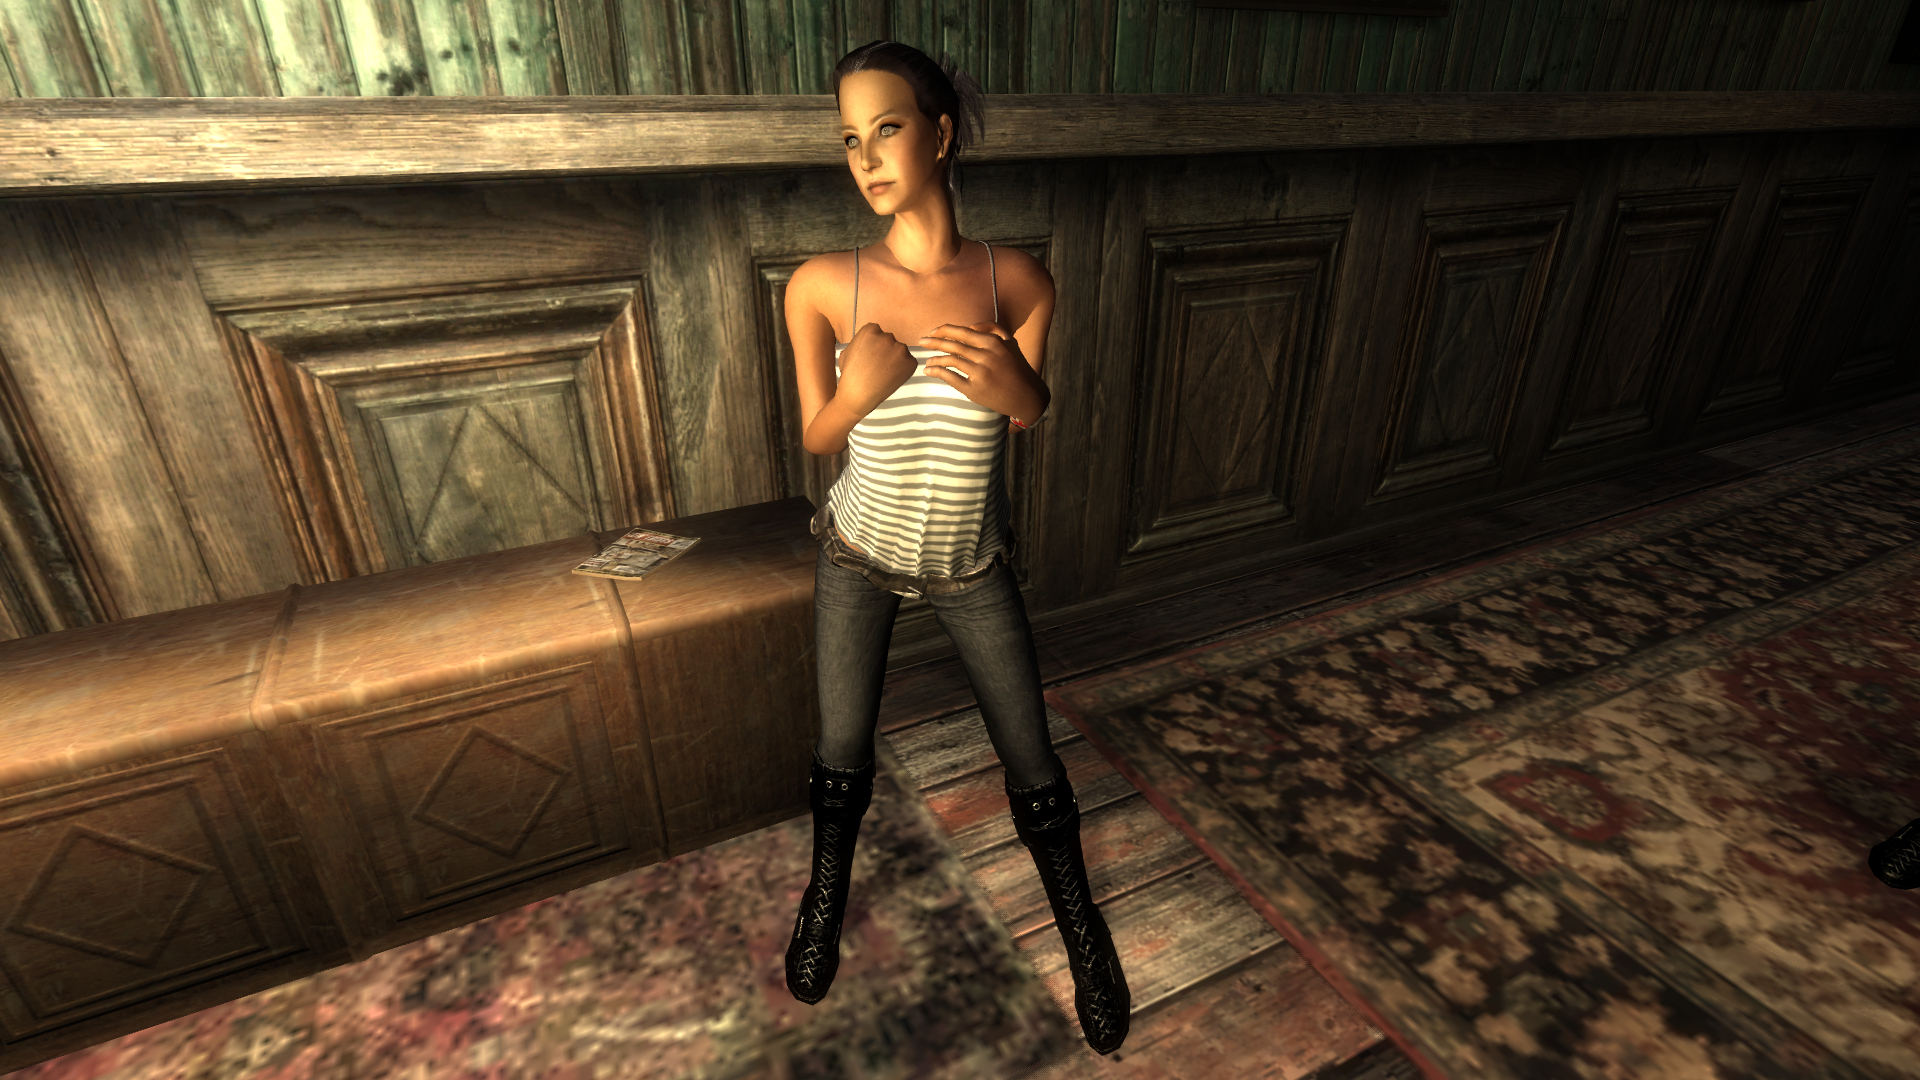 Fallout new vegas porn mod agree, rather